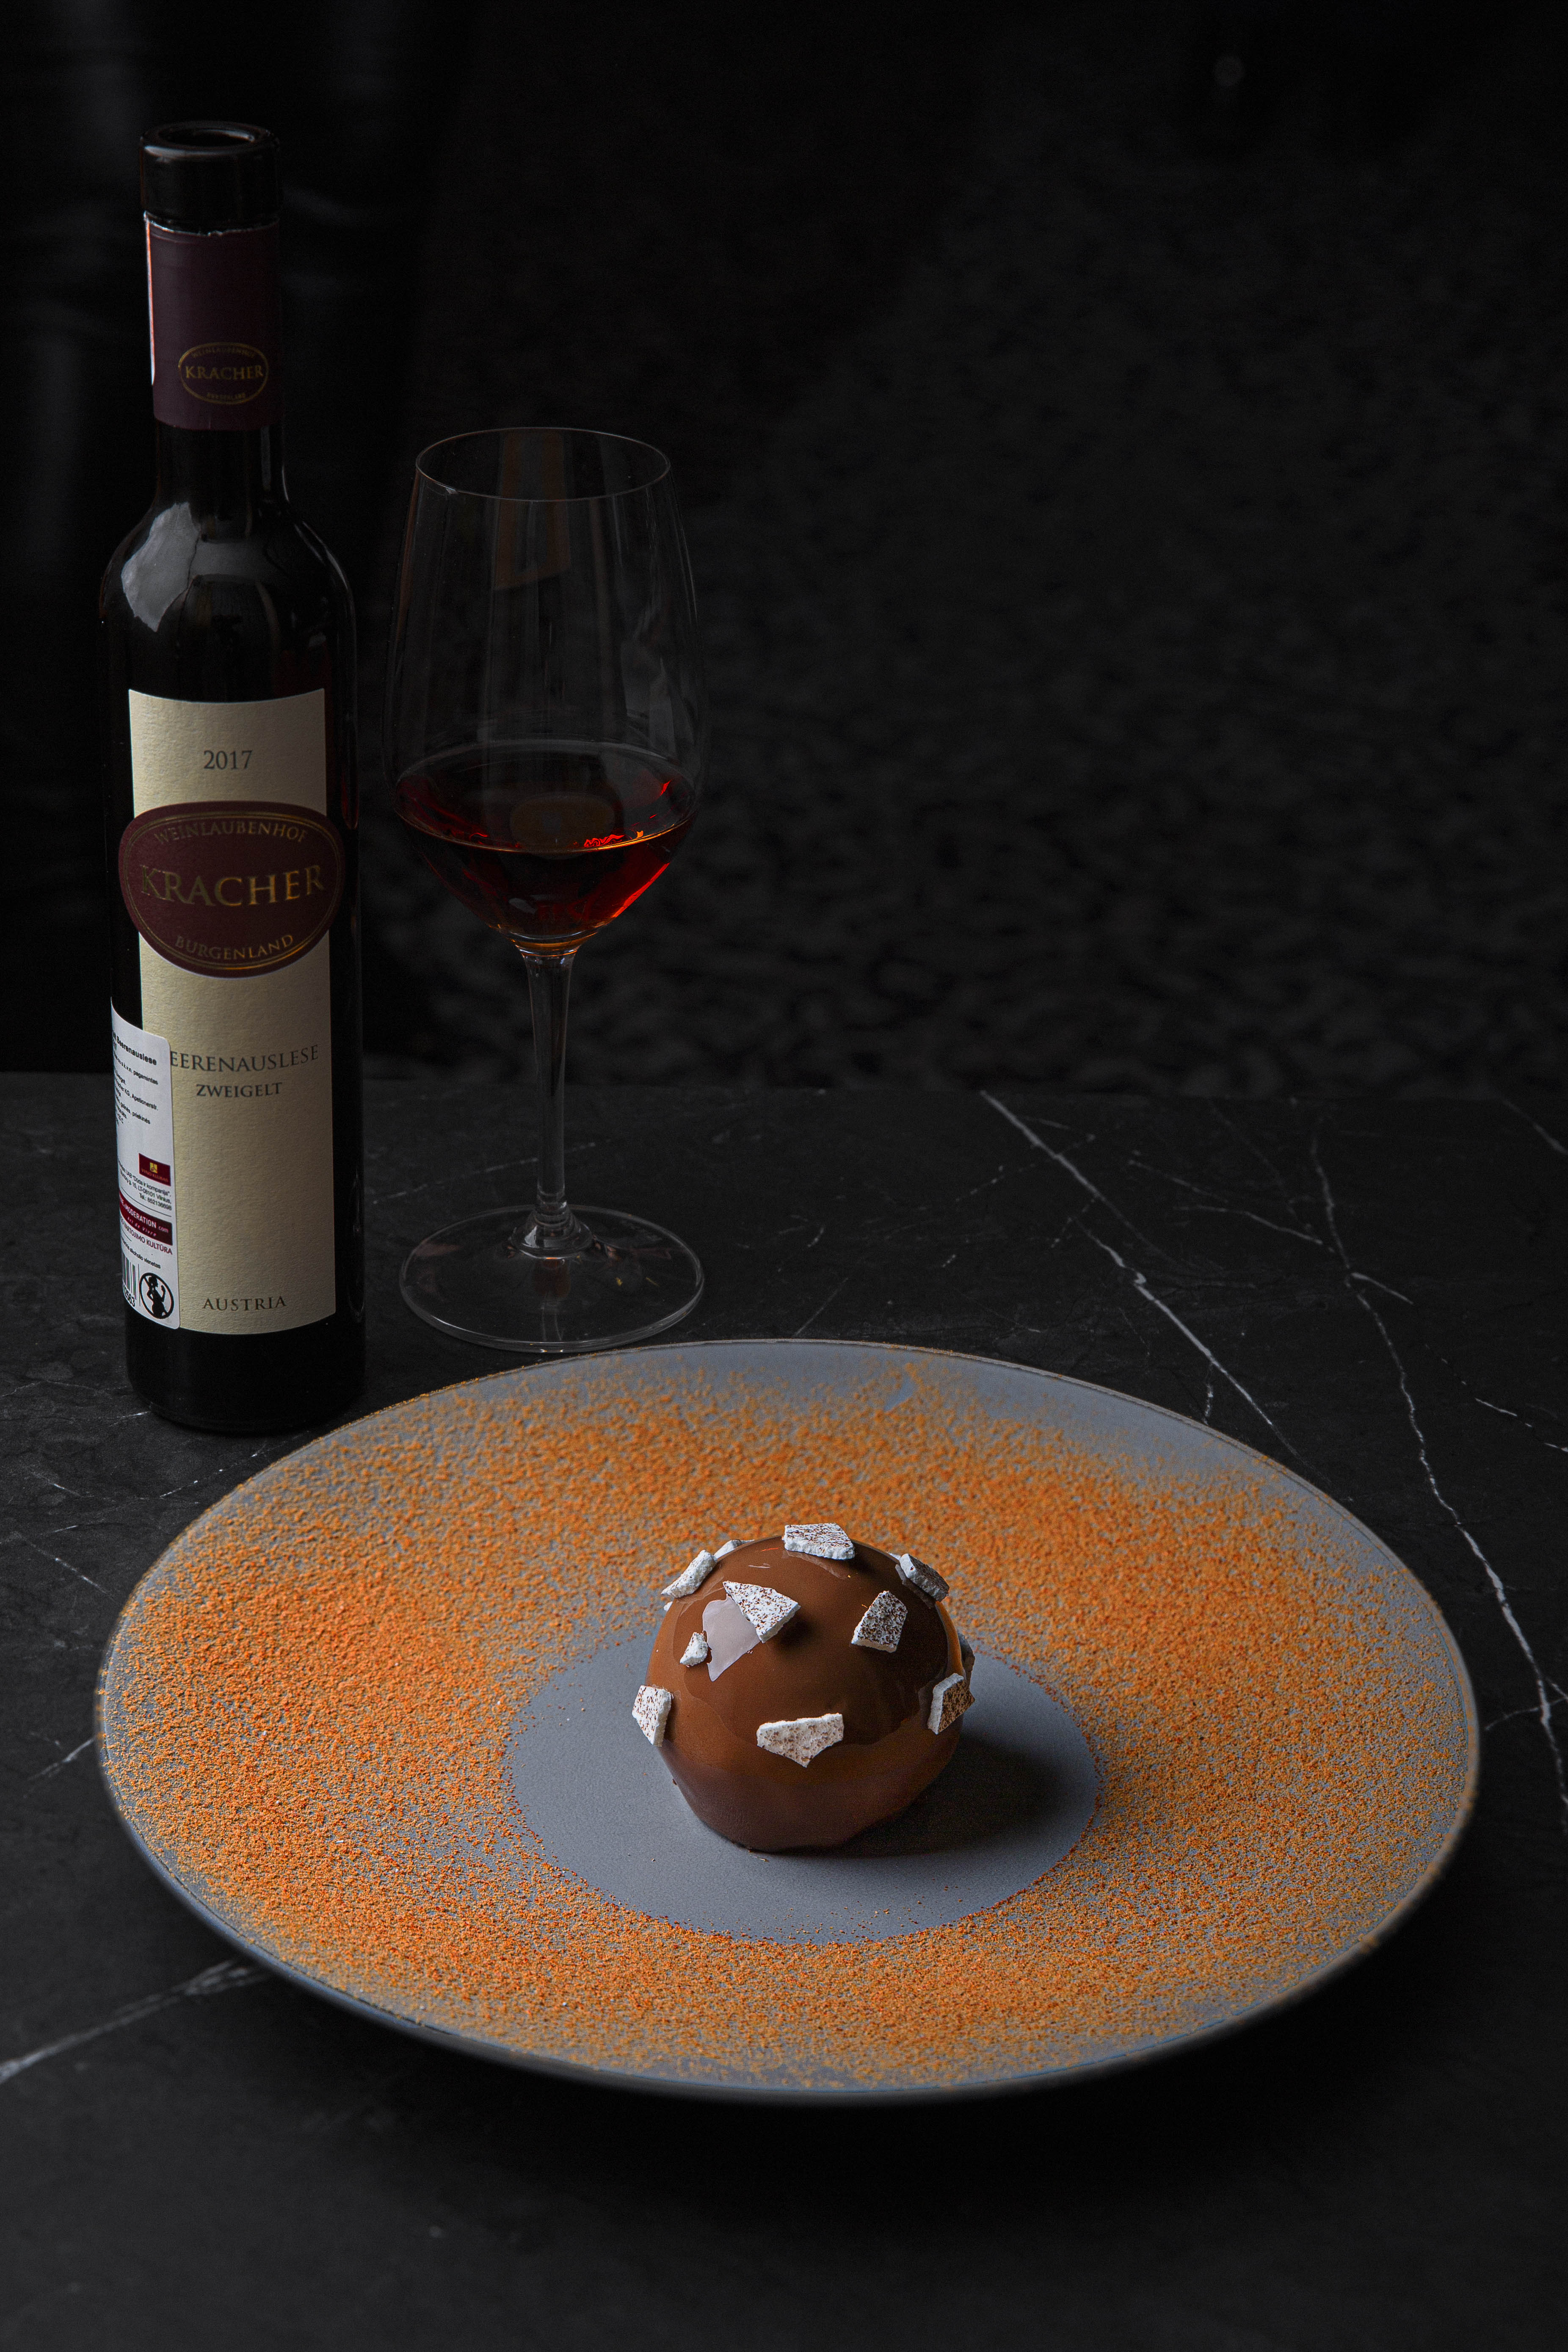 Dine Chocolate mousse Wine and Dessert 2019